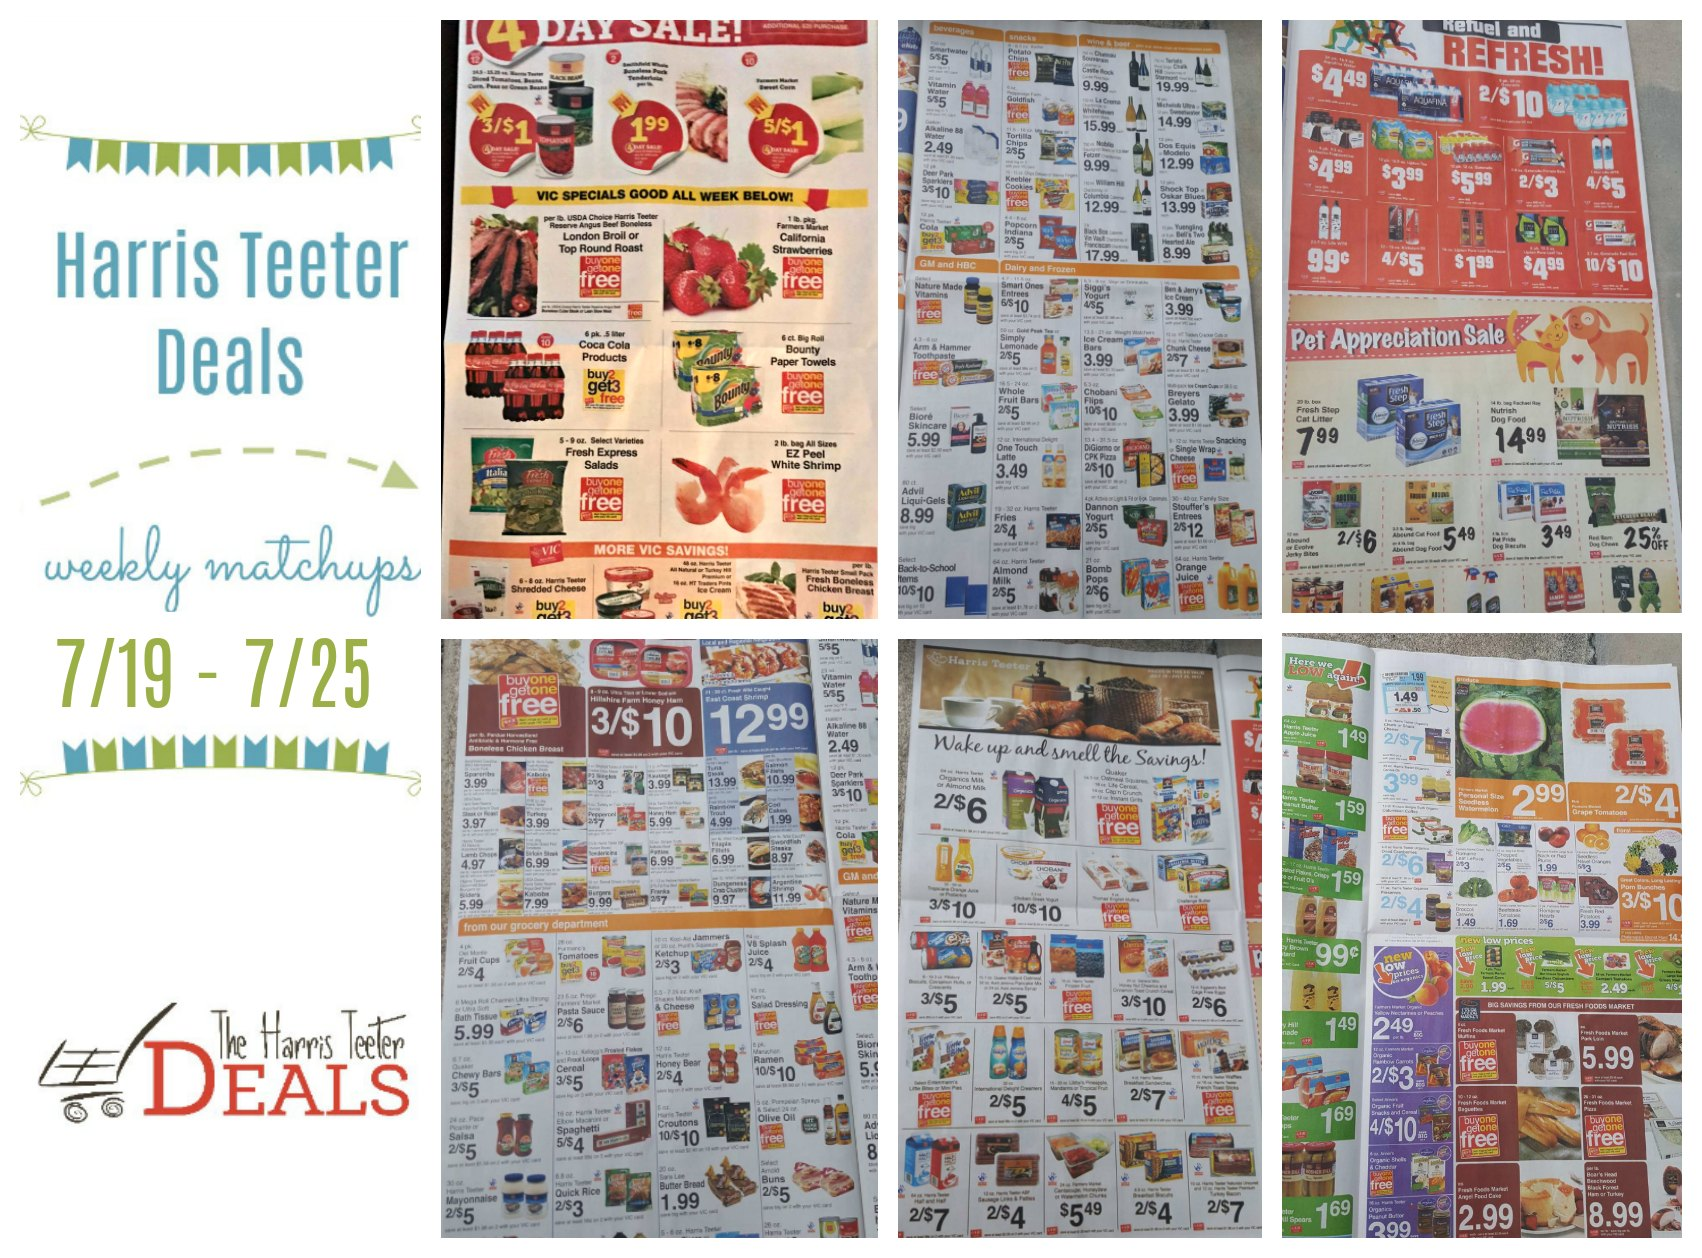 Harris Teeter Deals Weekly List and Coupon Matchups 7/19 – 7/25 - The Harris Teeter Deals